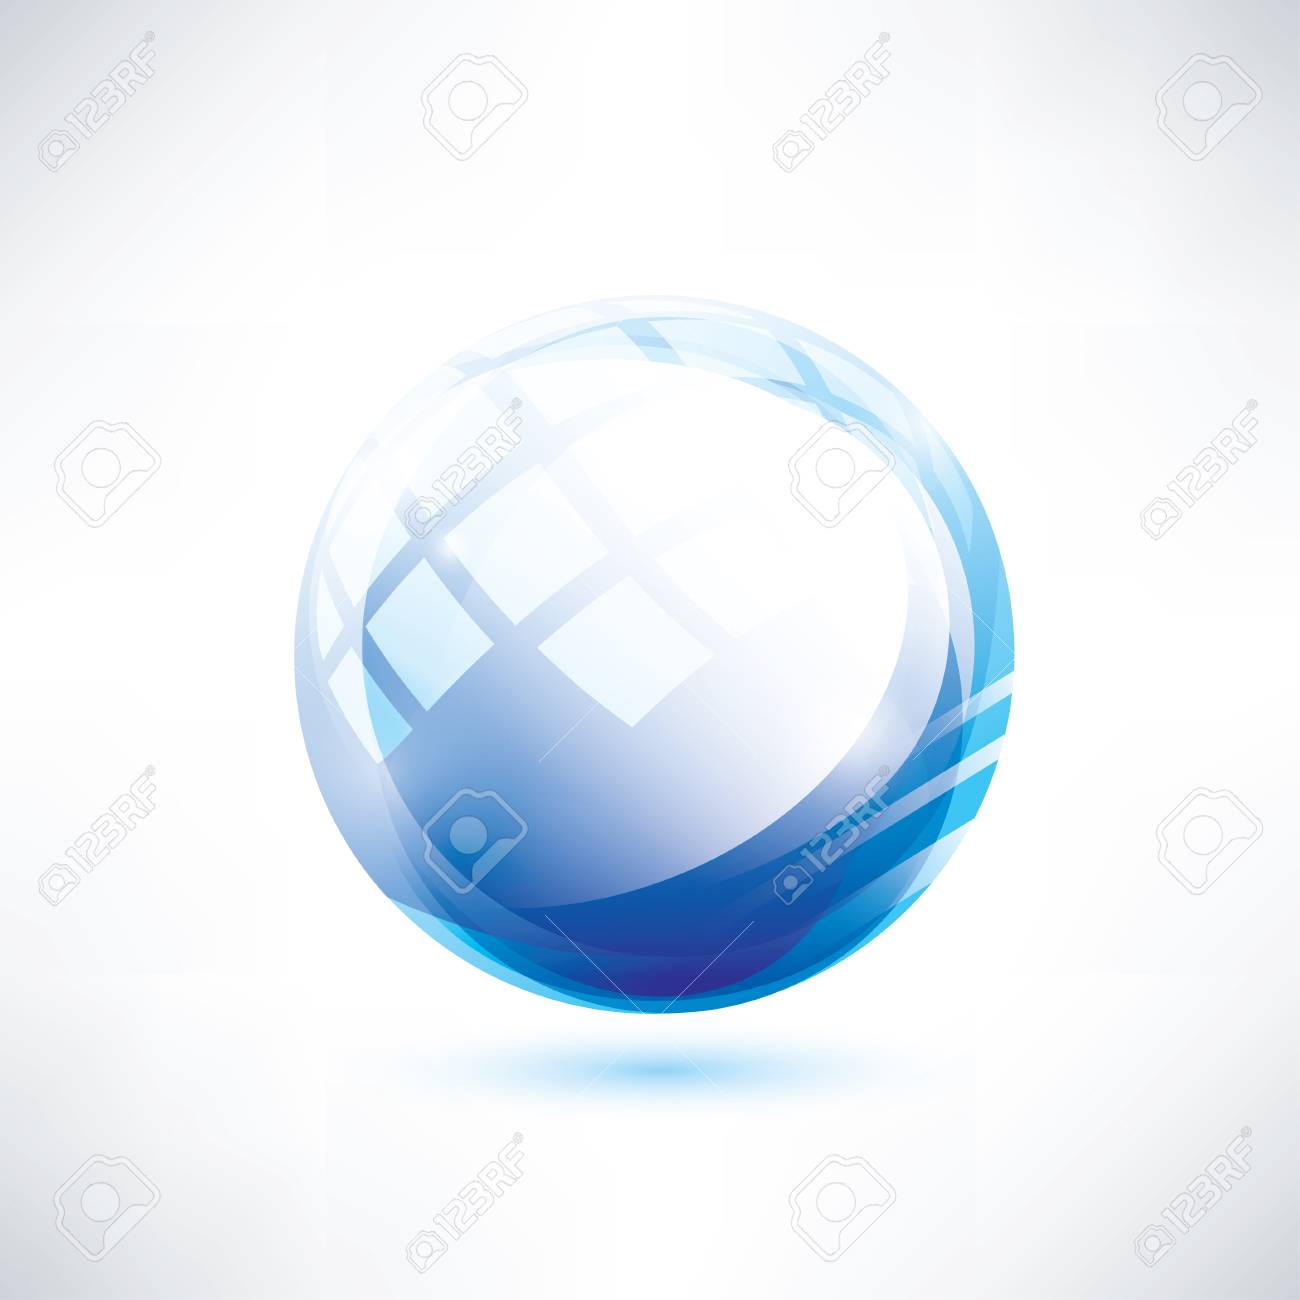 blue glossy circle, abstract shape Stock Vector - 22348564